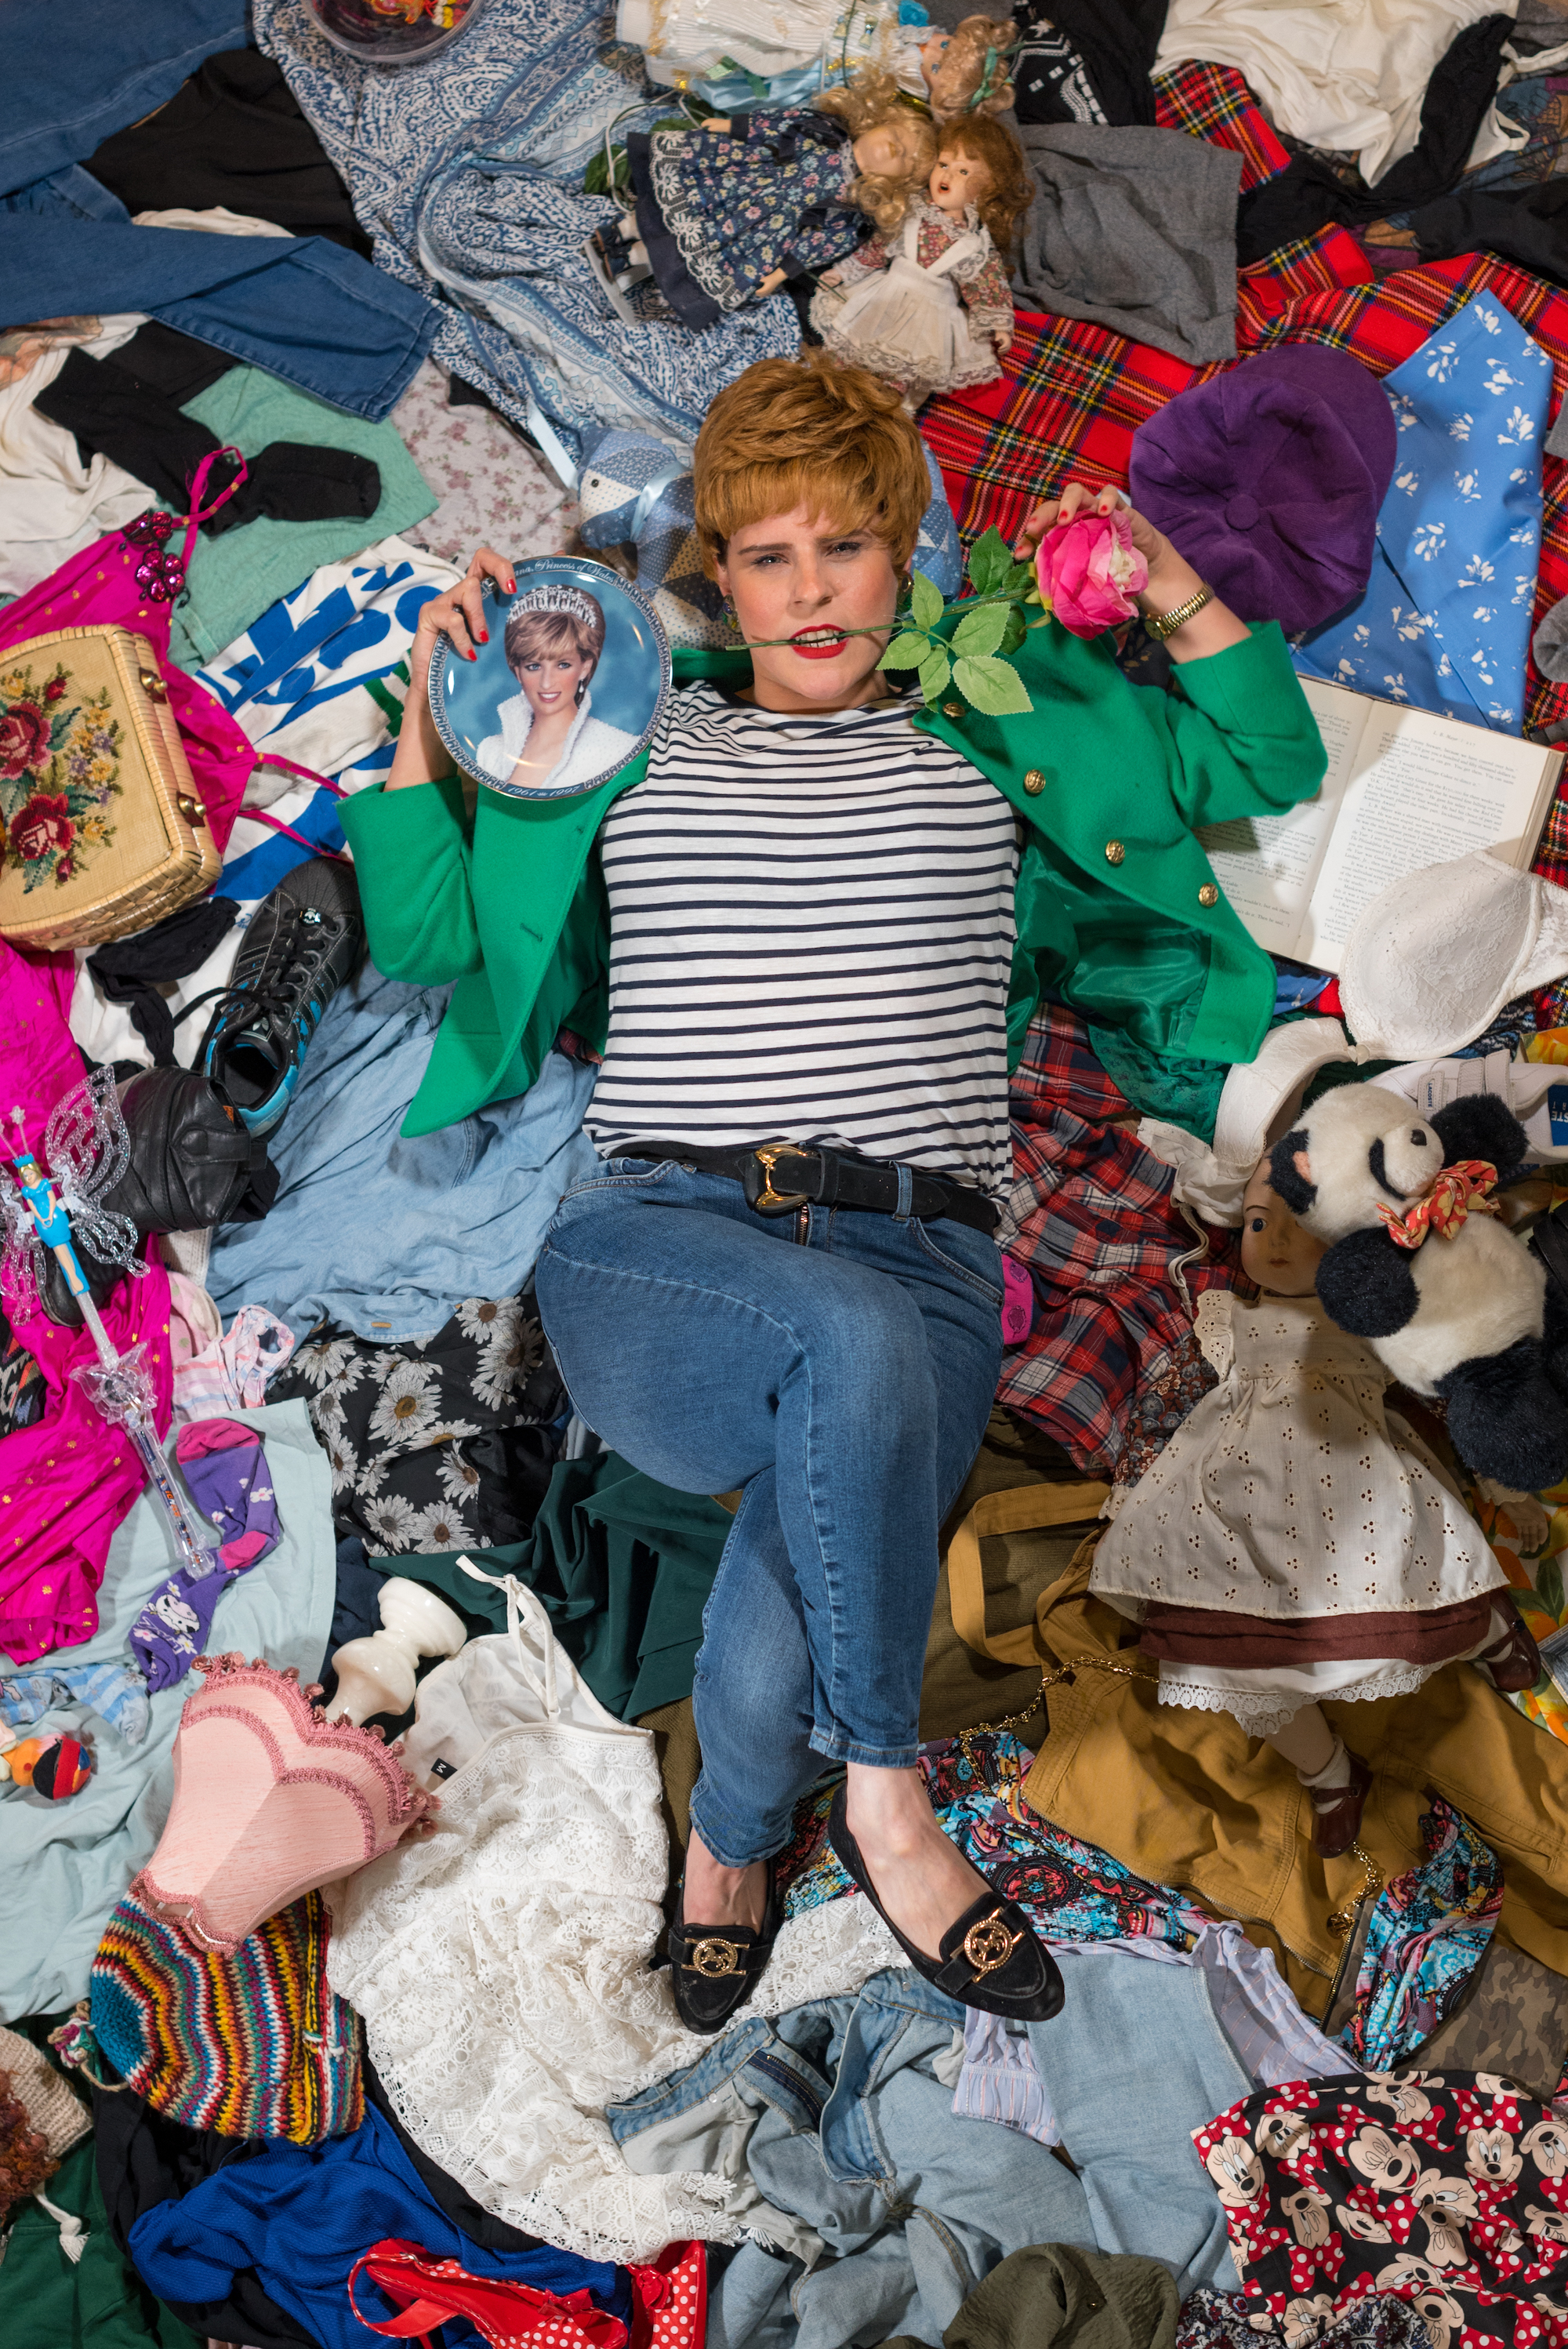 Celebrity Charity: Charity Shop Sue Bric And Brac Lady Di Tom Morley